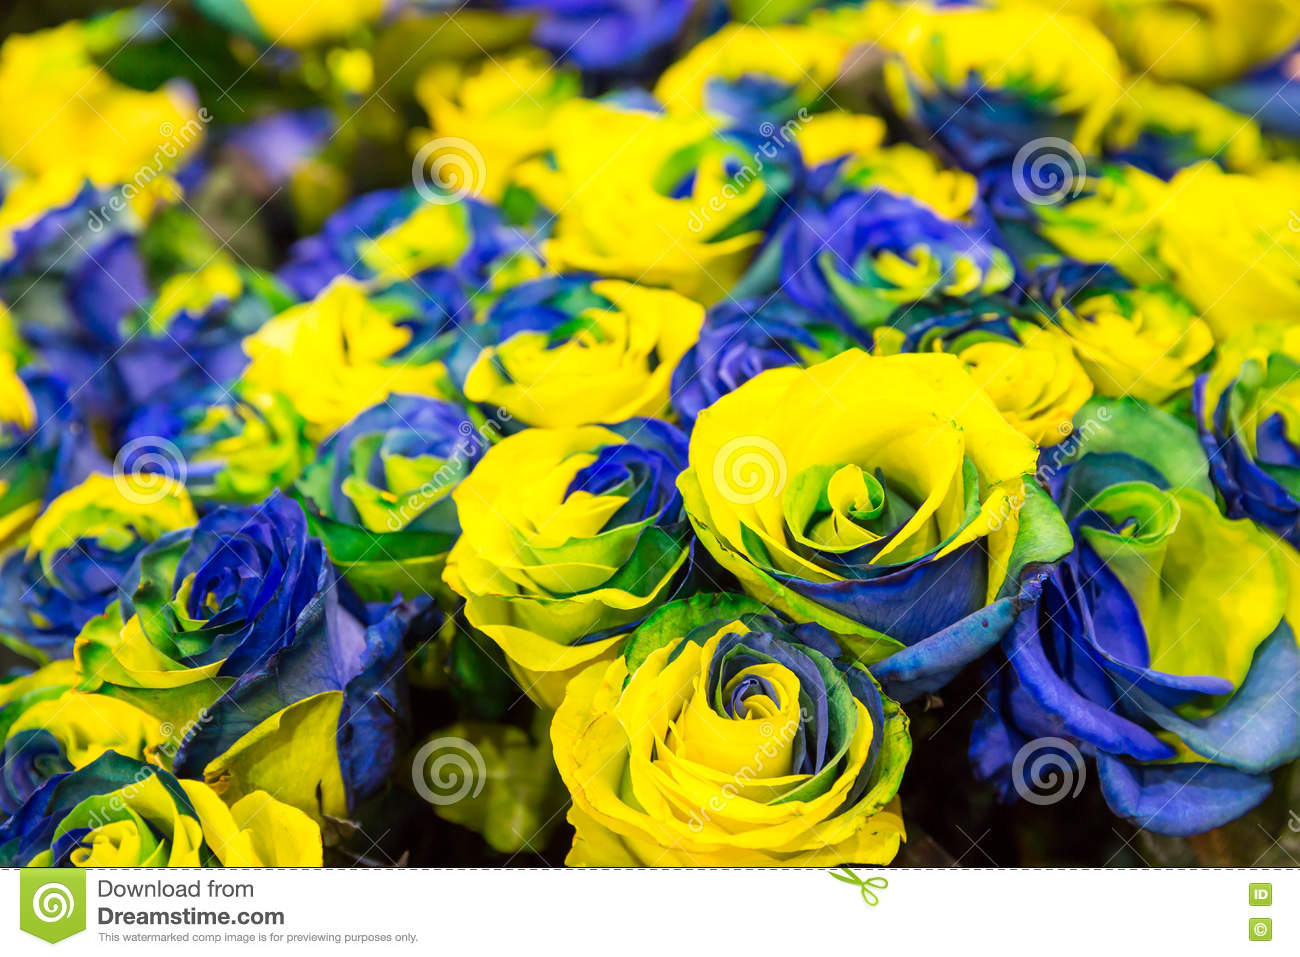 Blue And Yellow Roses Stock Photo - Image: 72467843 Beautiful Pictures Of Yellow Roses